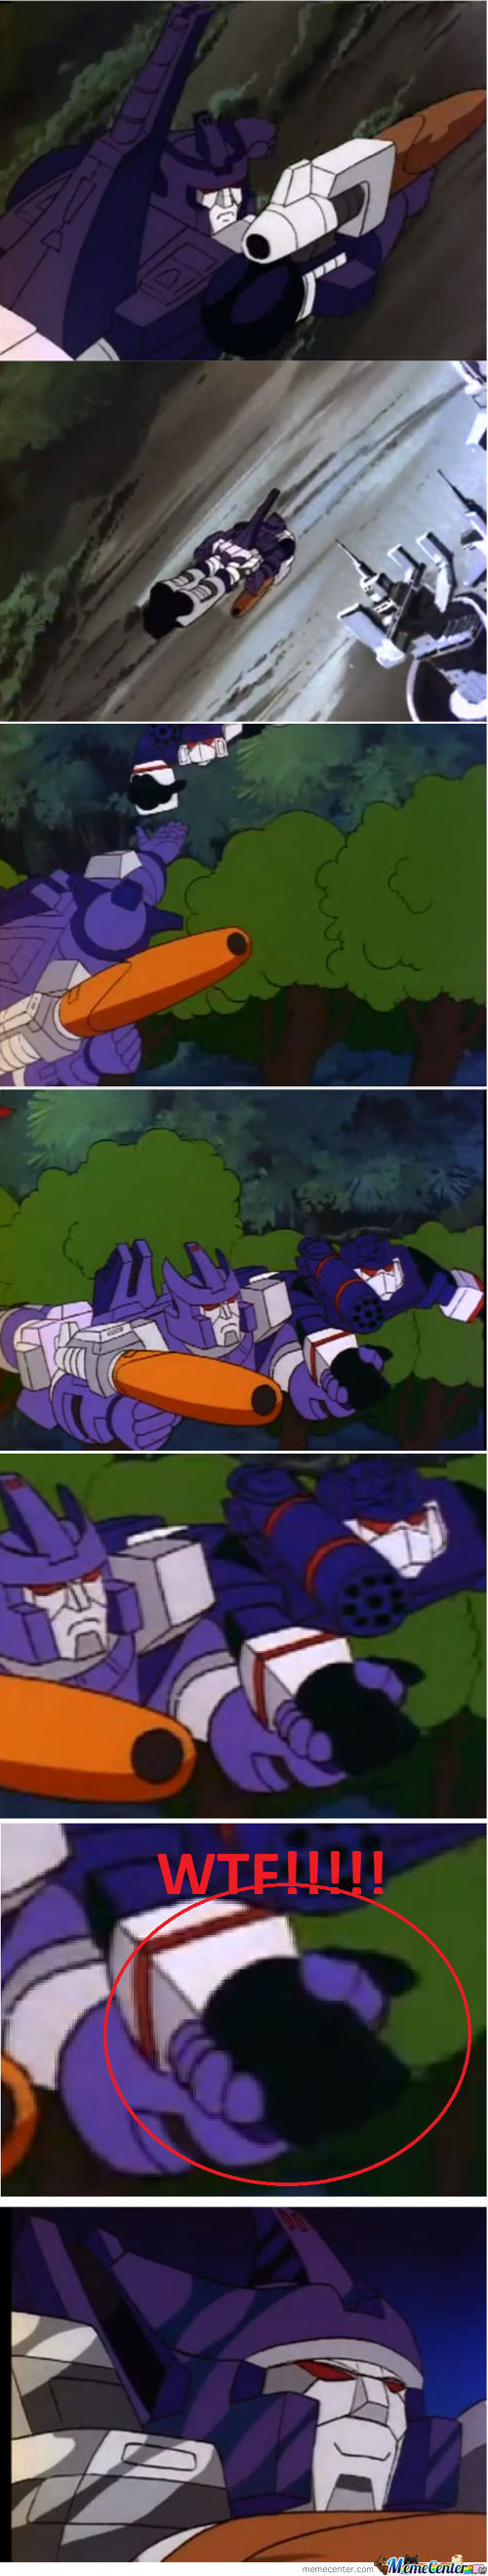 Why Galvatron!!!